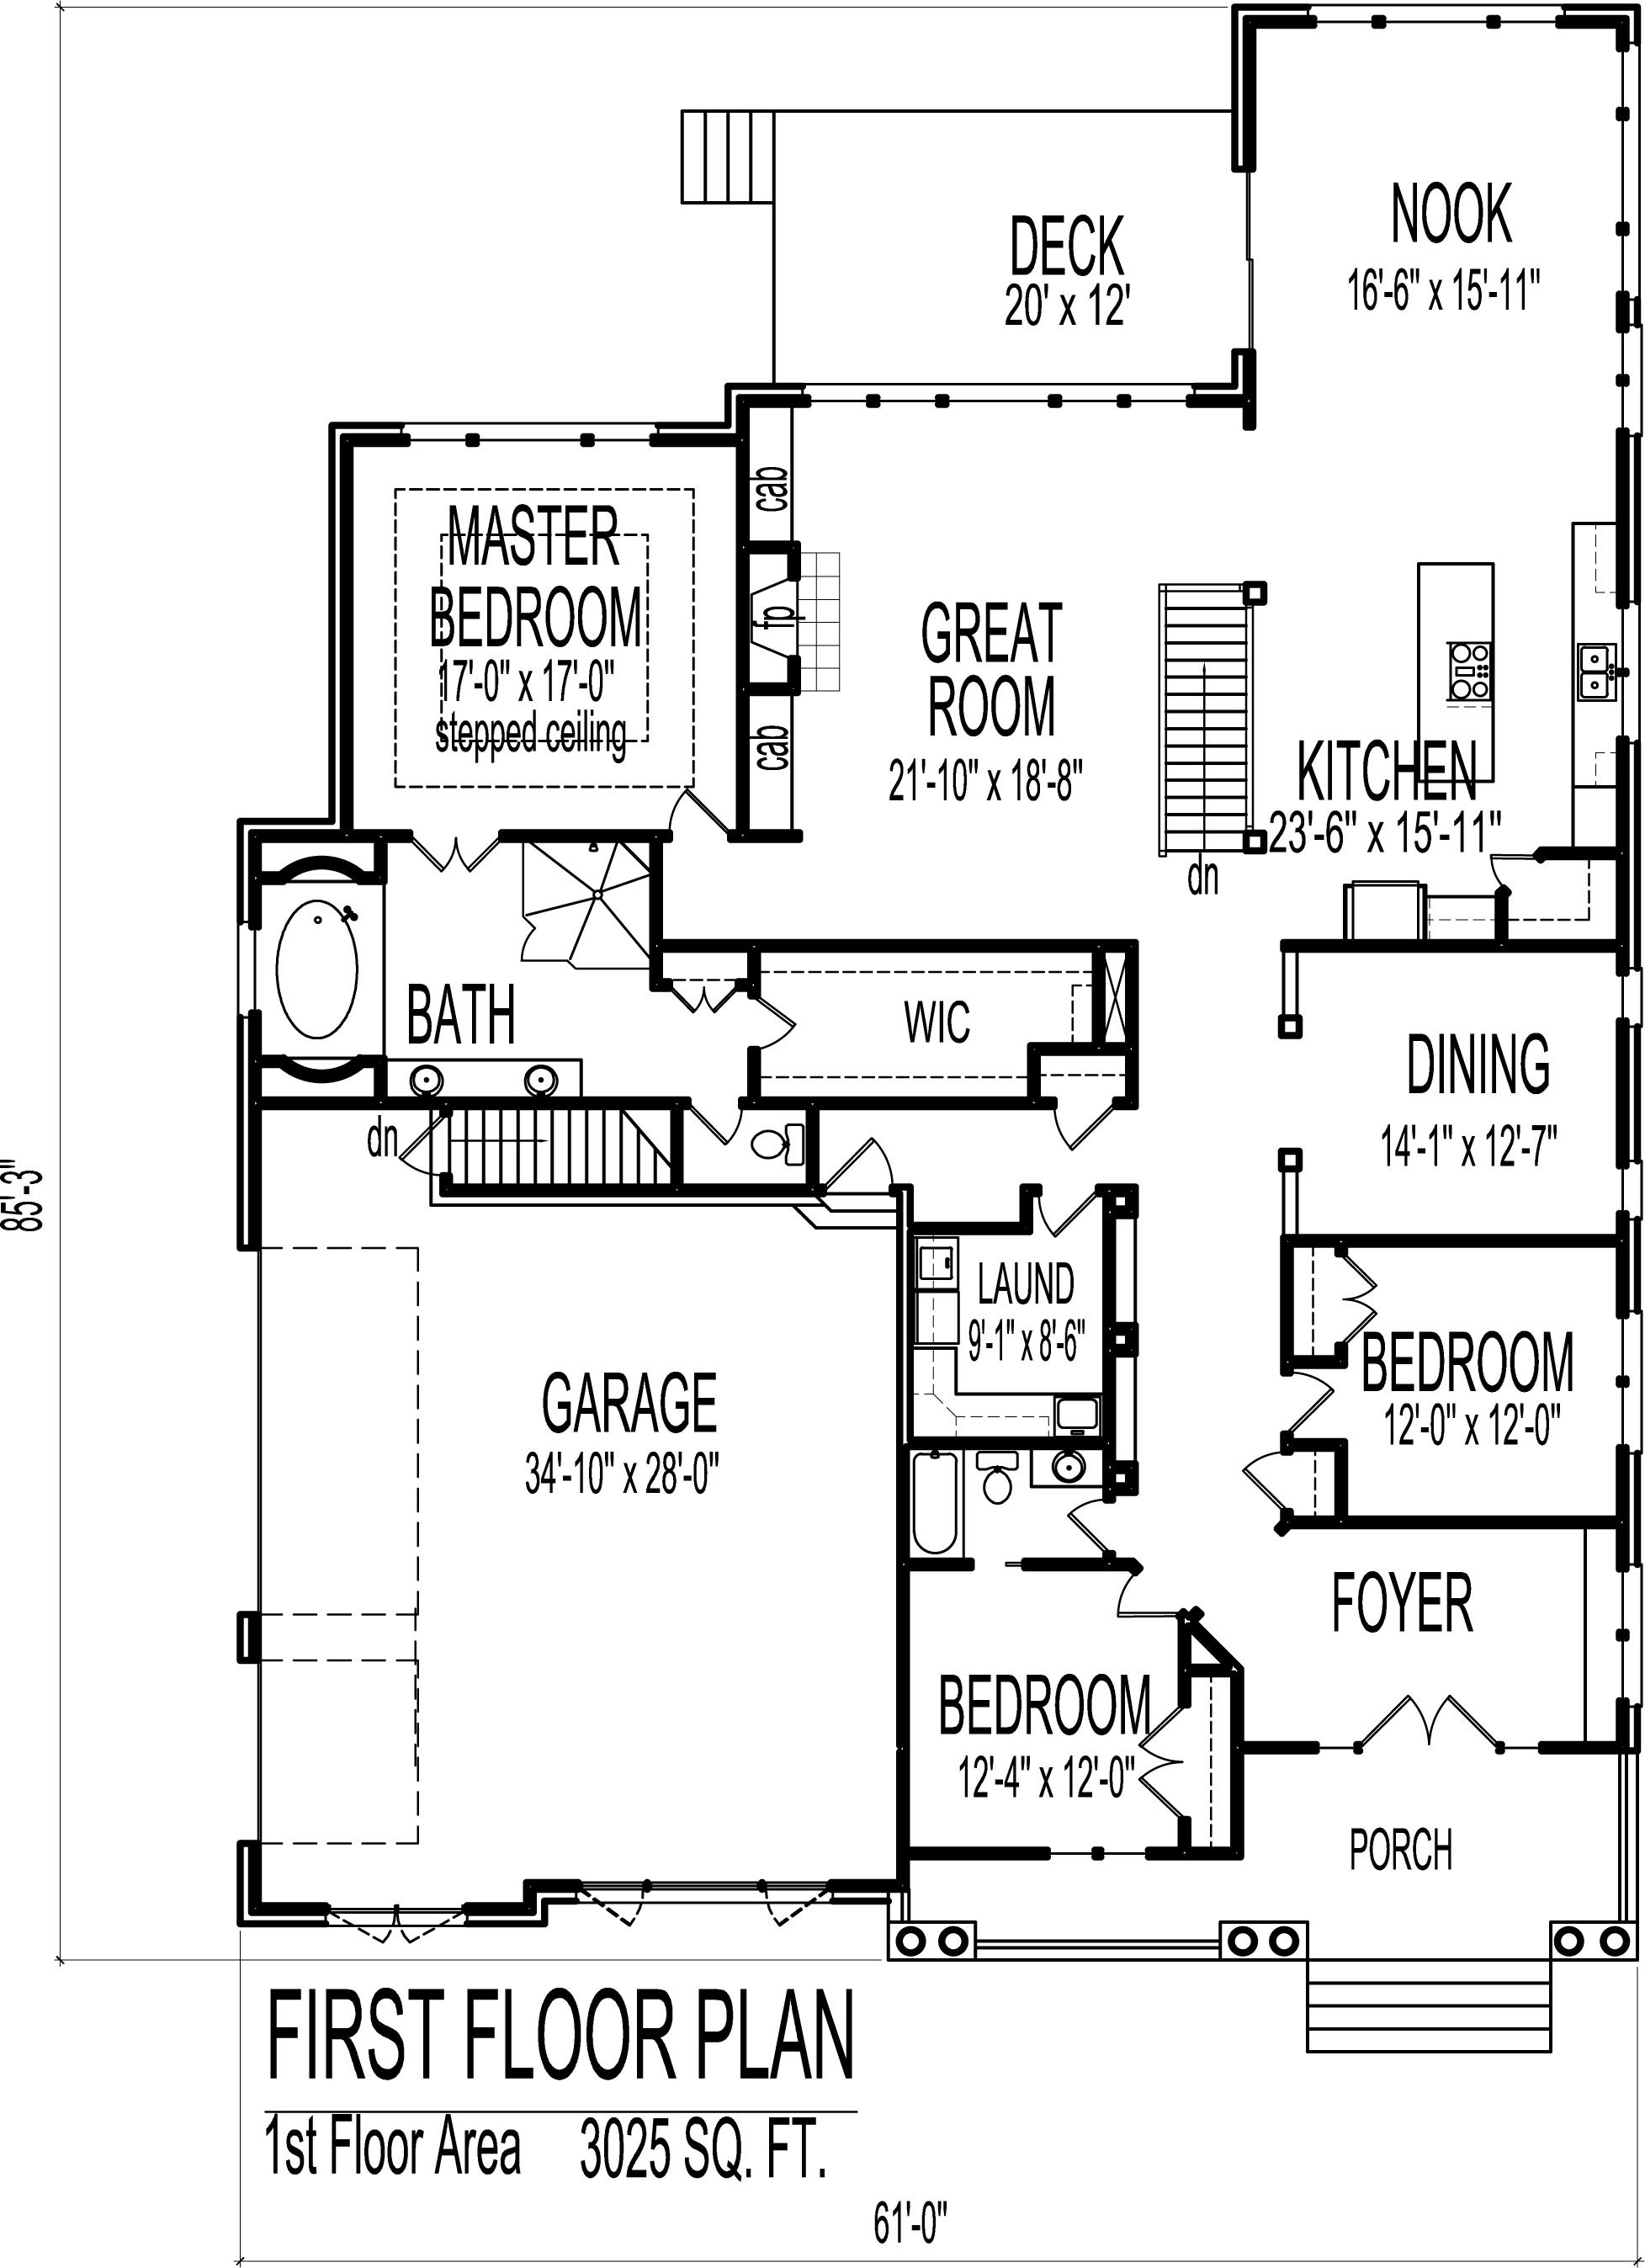 Small udor Style ottage House Floor Plans 3 Bedroom Single Story ... - ^